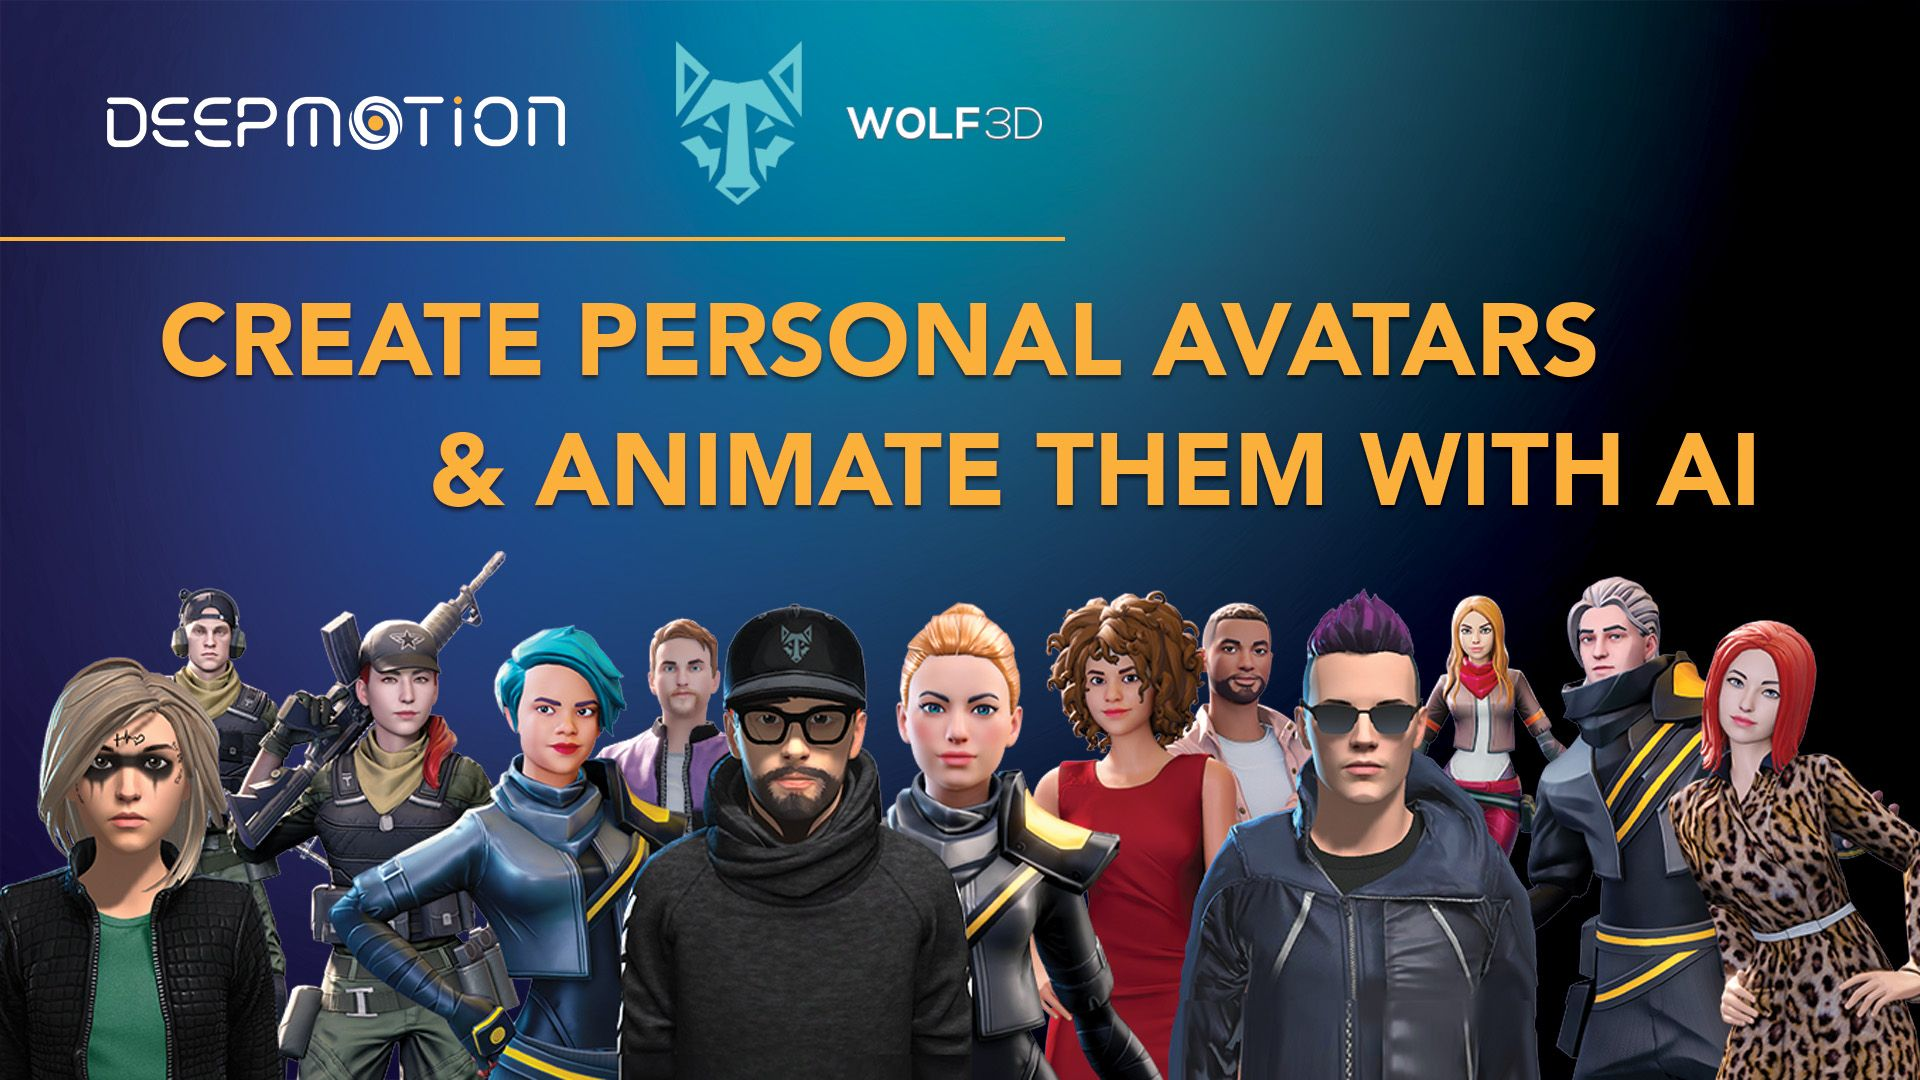 DeepMotion + Wolf3D: Create Personal Avatars & Animate Them With AI